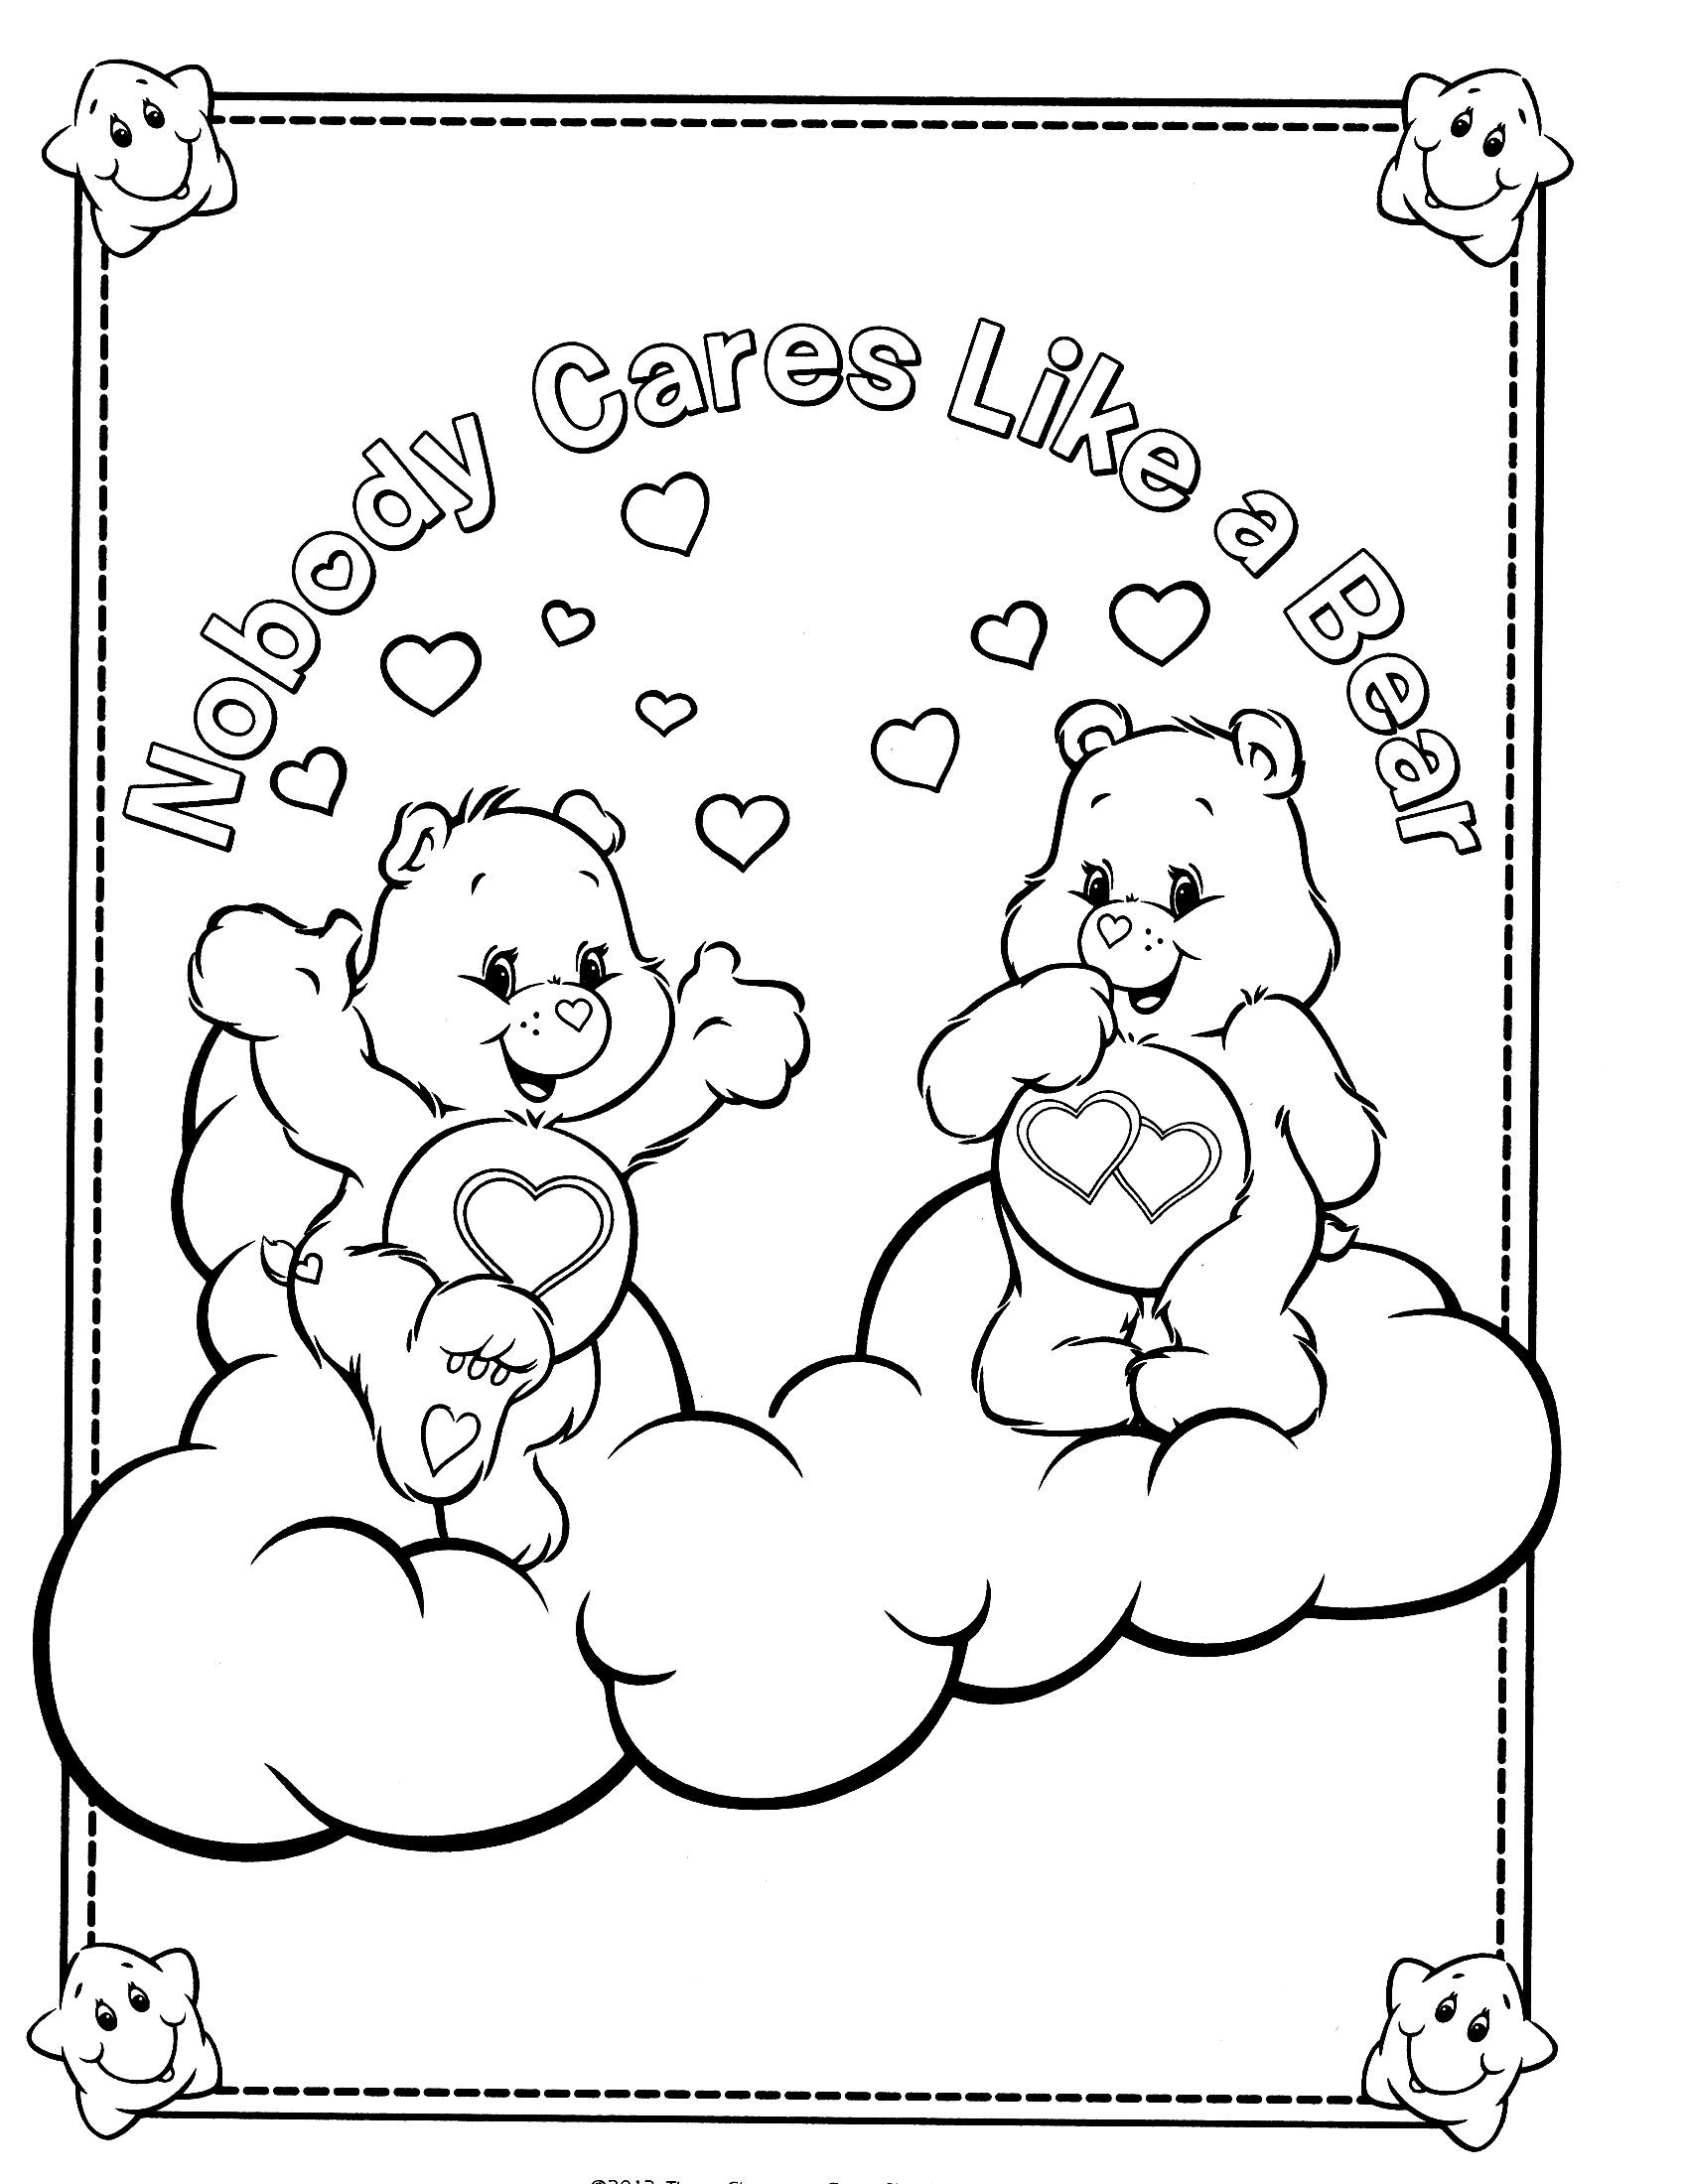 care bears coloring page embroider Pinterest Care